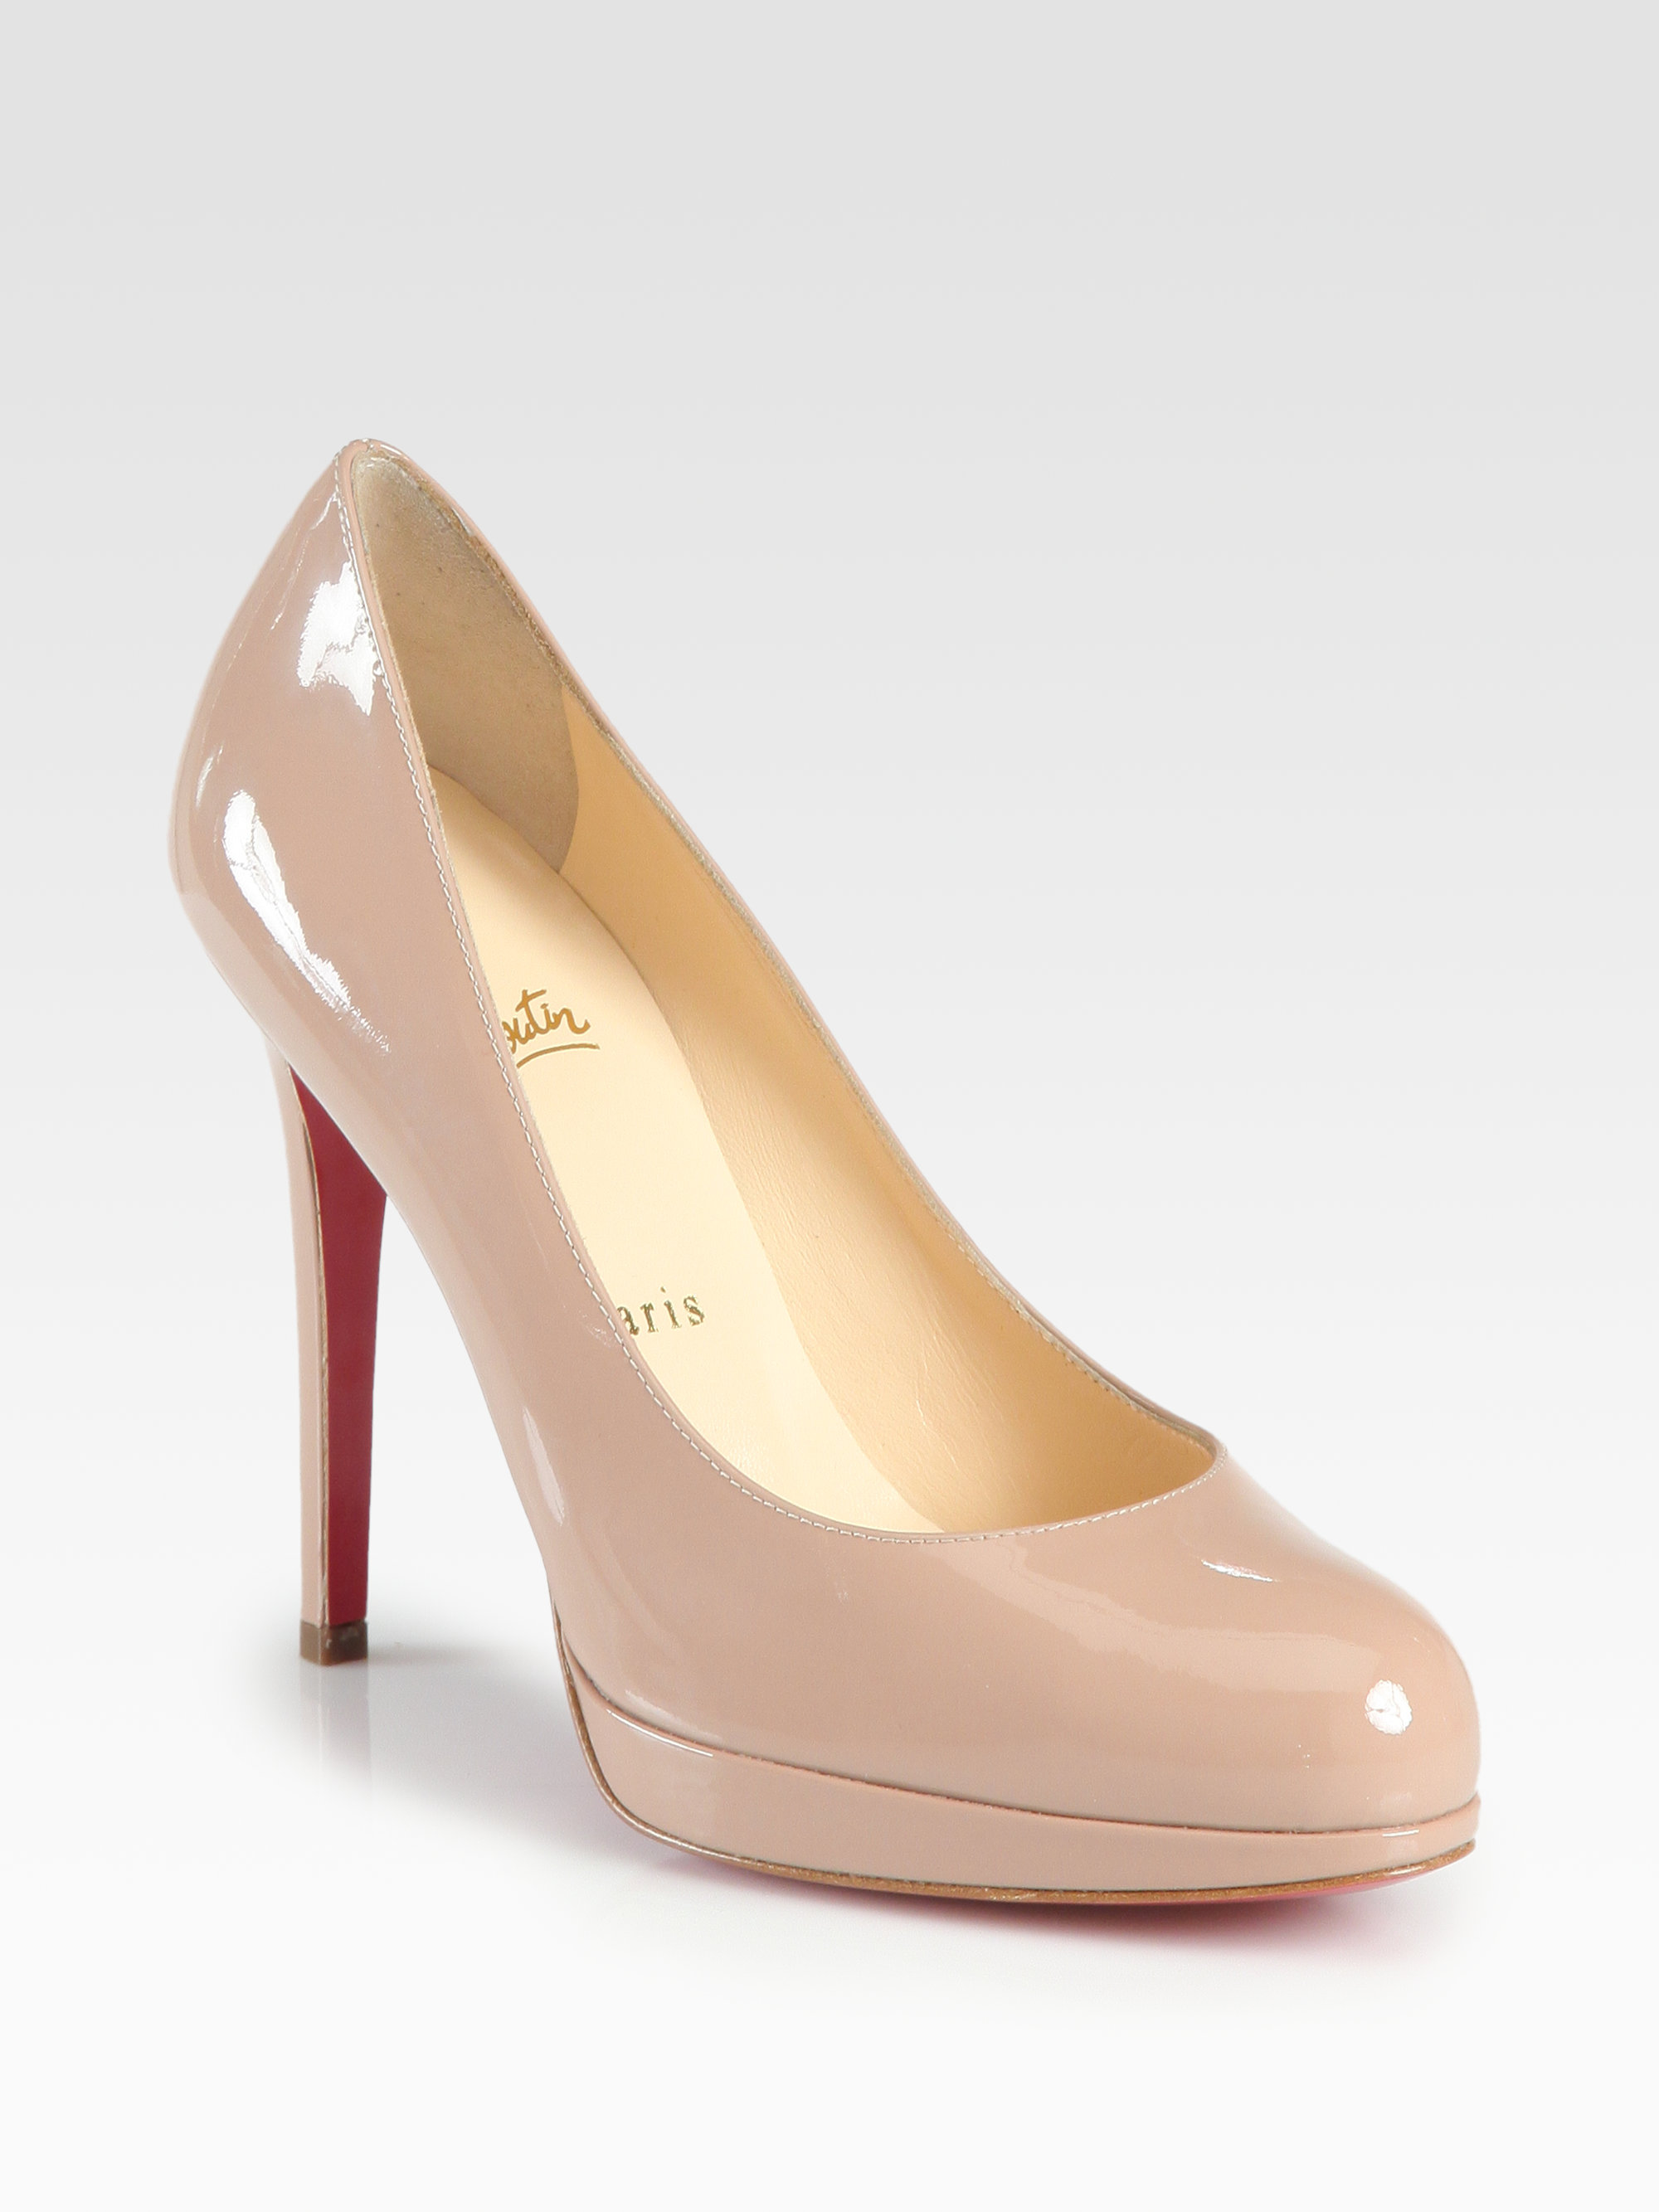 christian louboutin snakeskin simple pumps | The Little Arts Academy